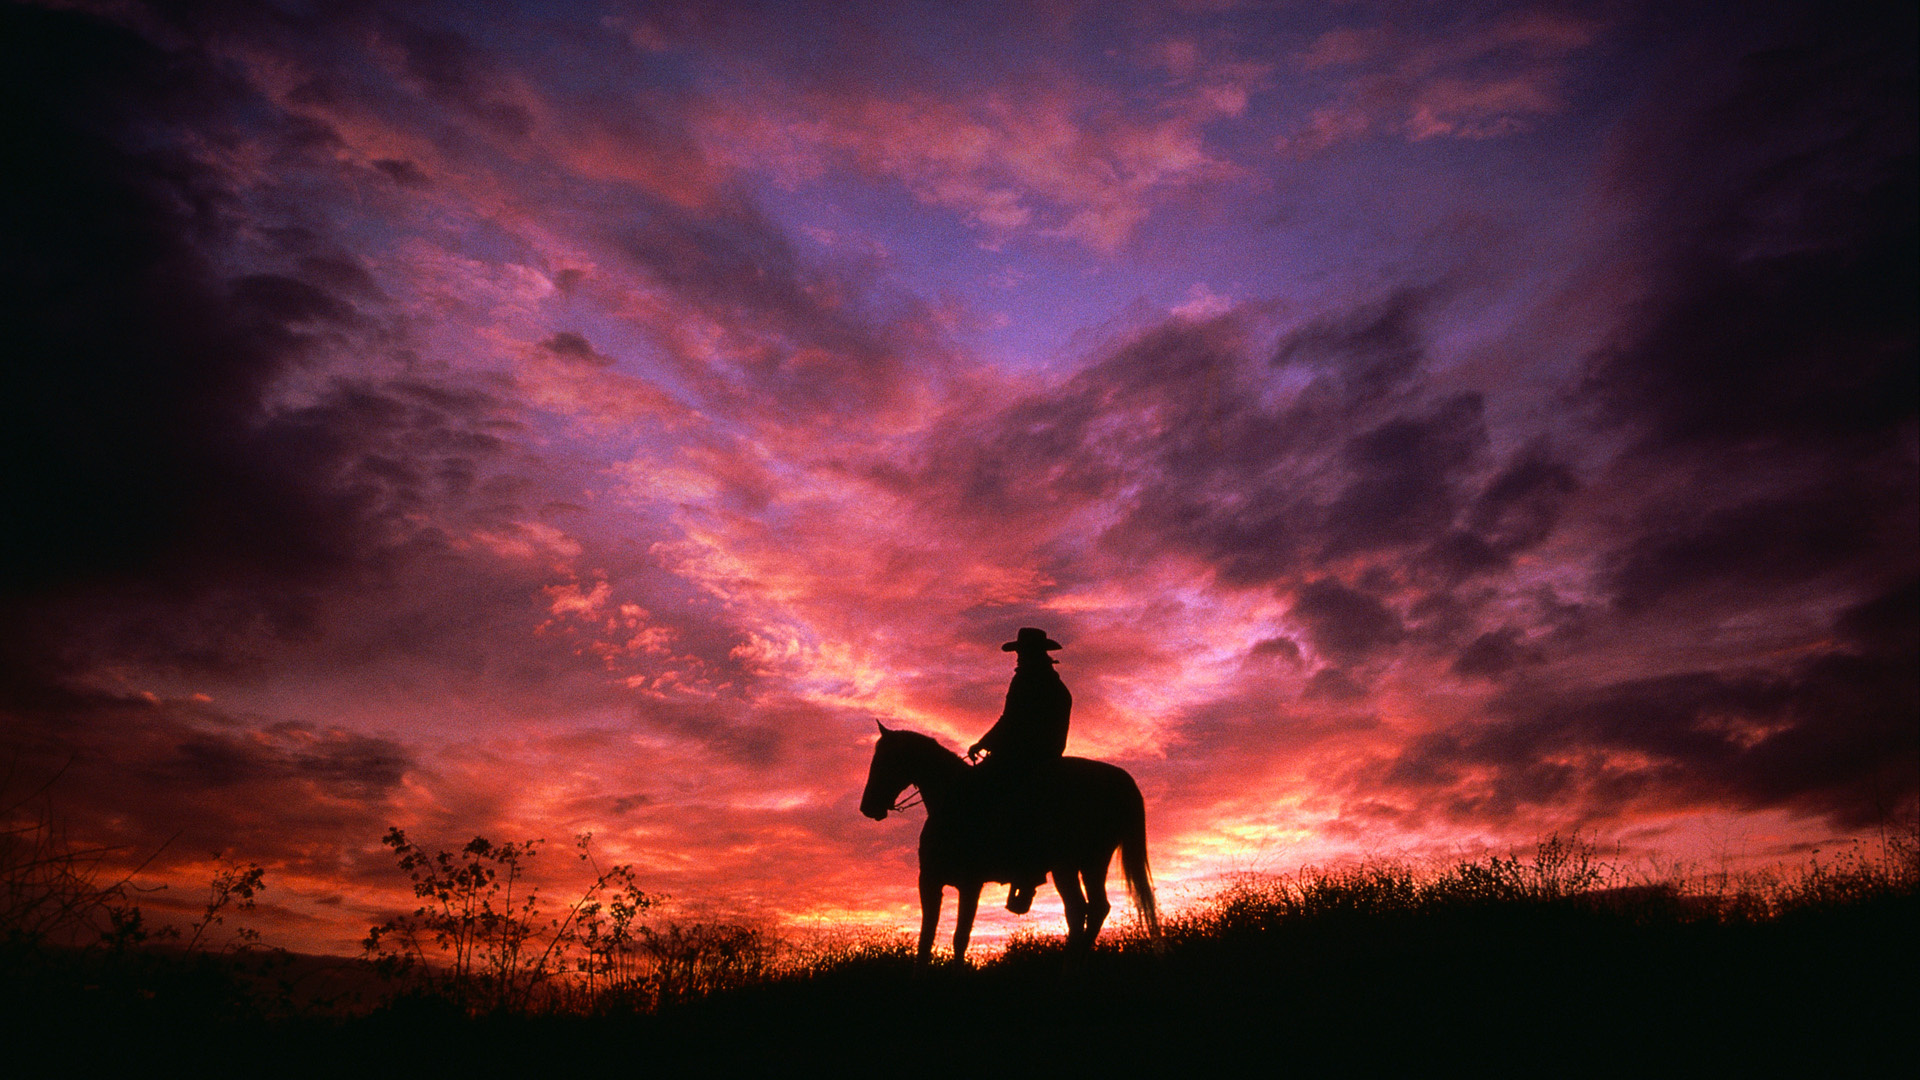 Wallpaper sky cowboy clouds horse silhouette sunset cowboy on 1920x1080